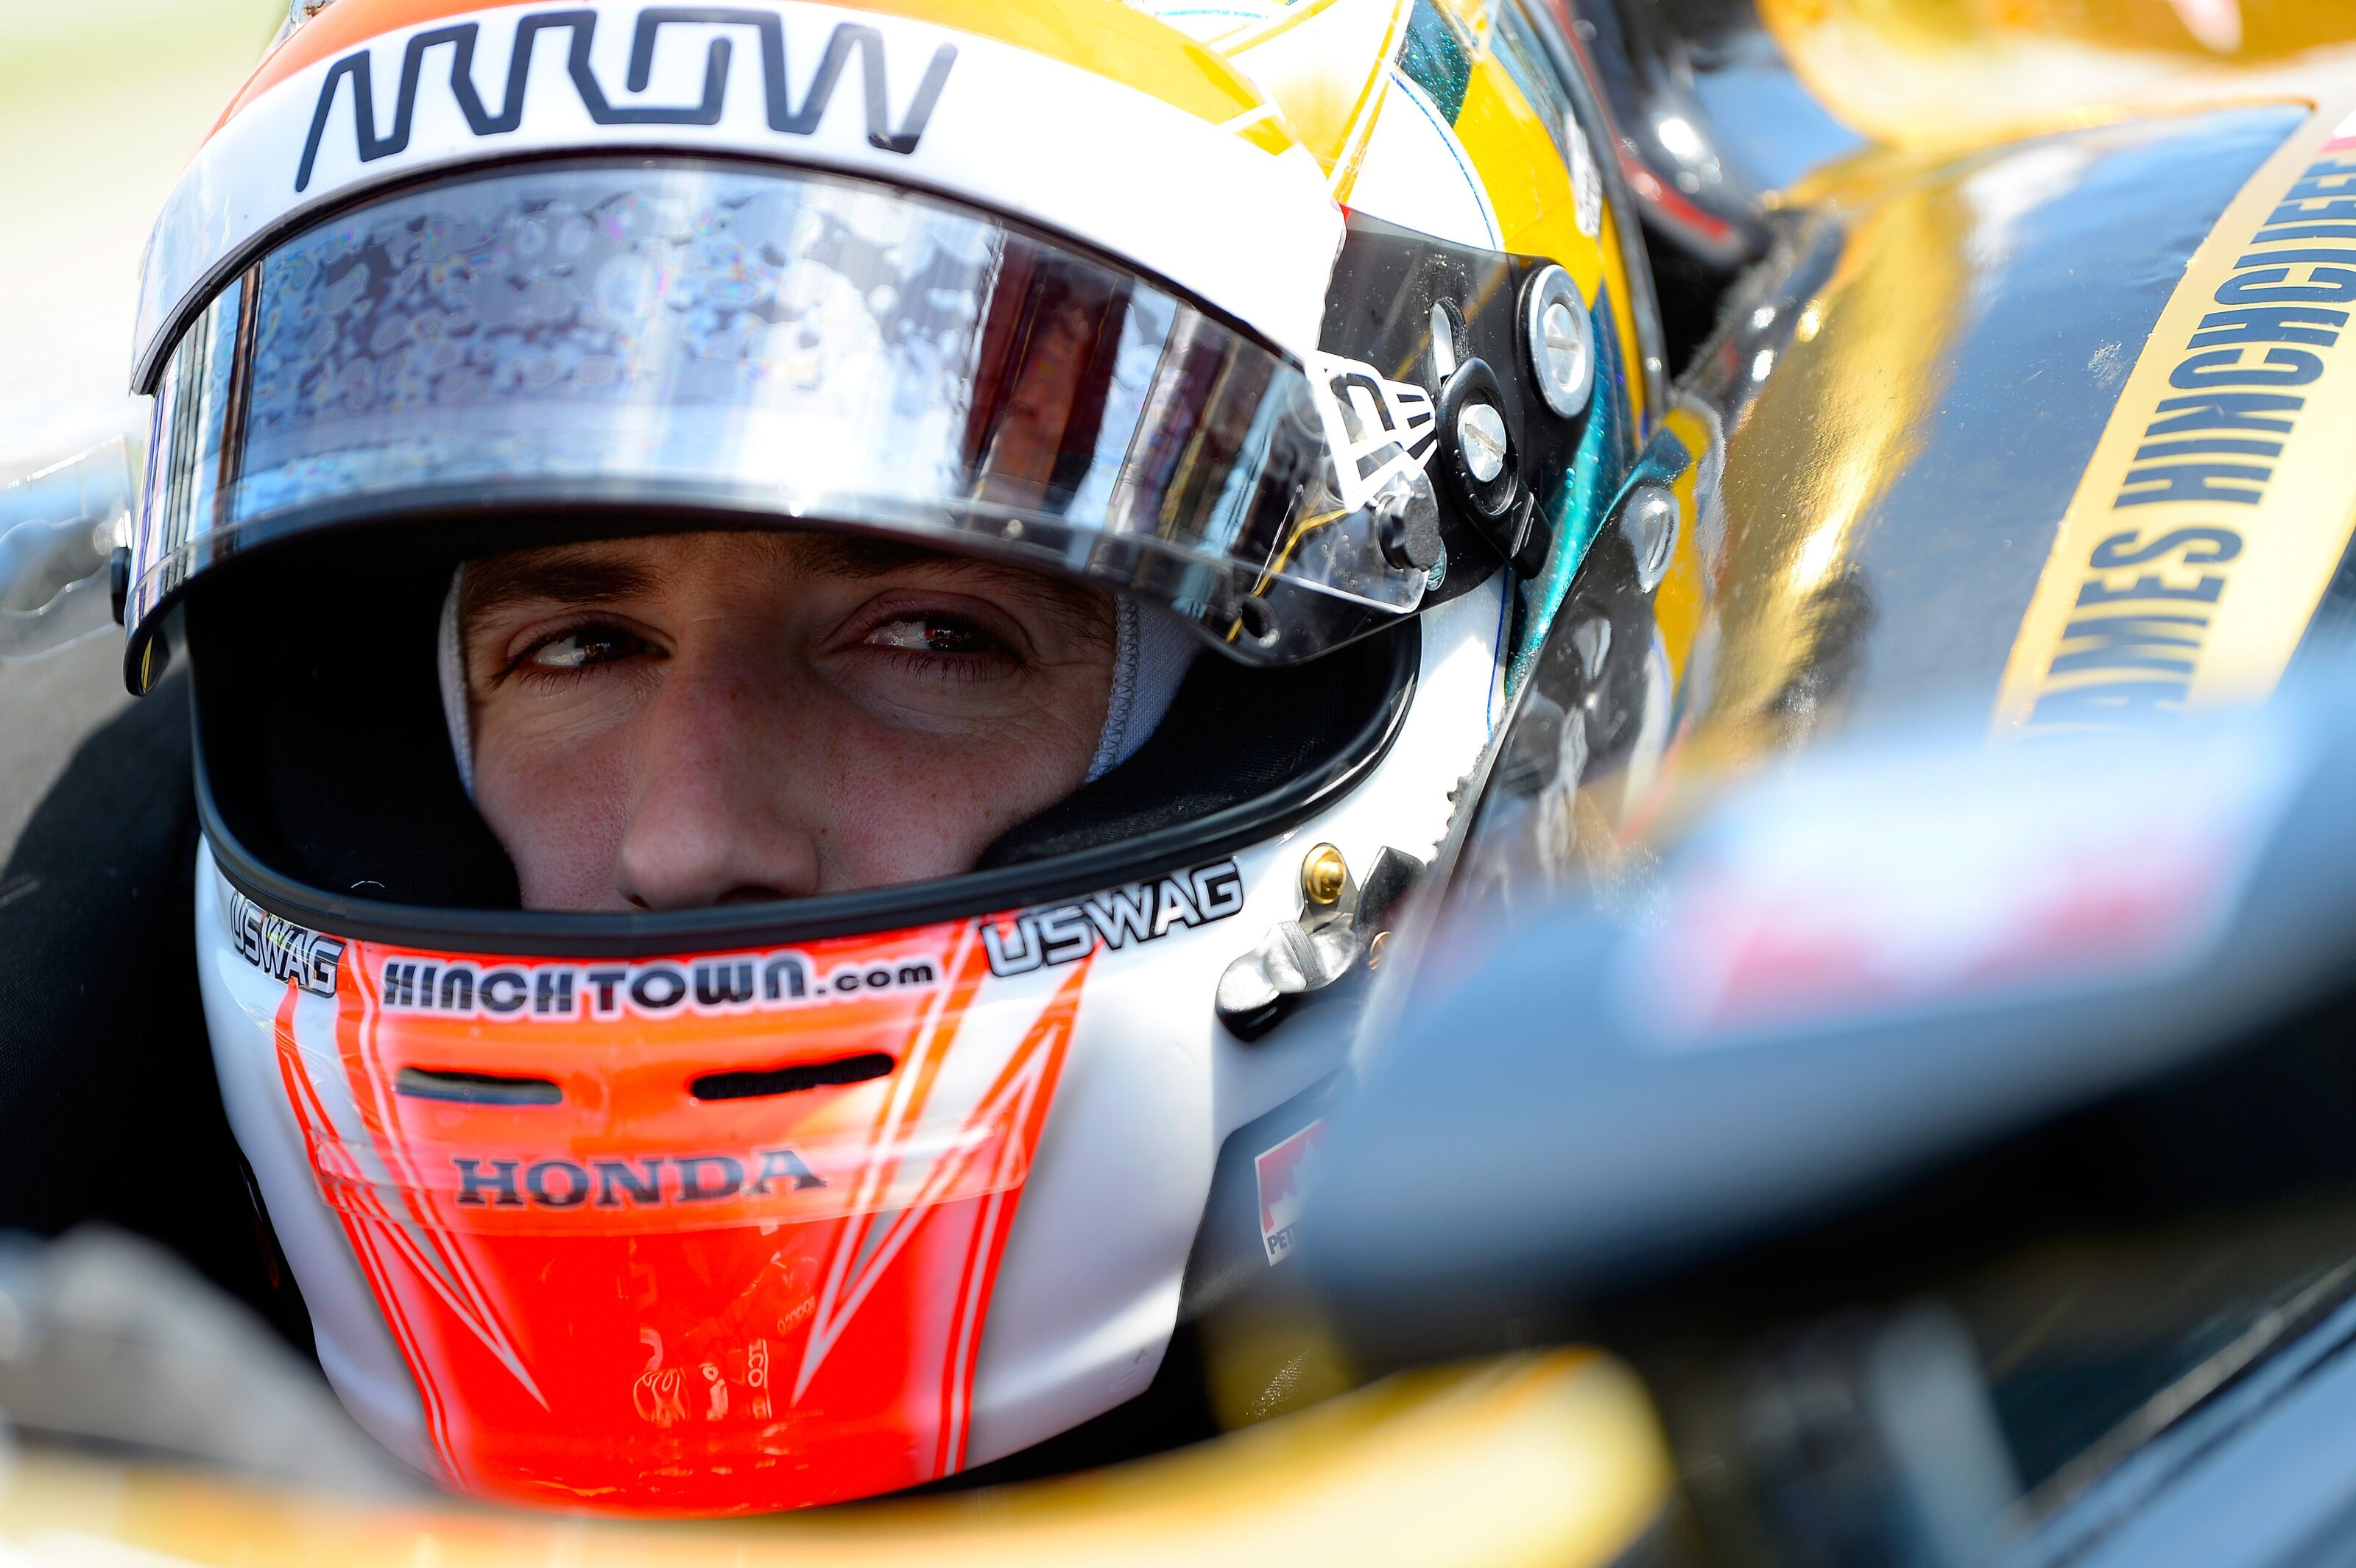 IndyCar: Could James Hinchcliffe switch to Chevrolet?